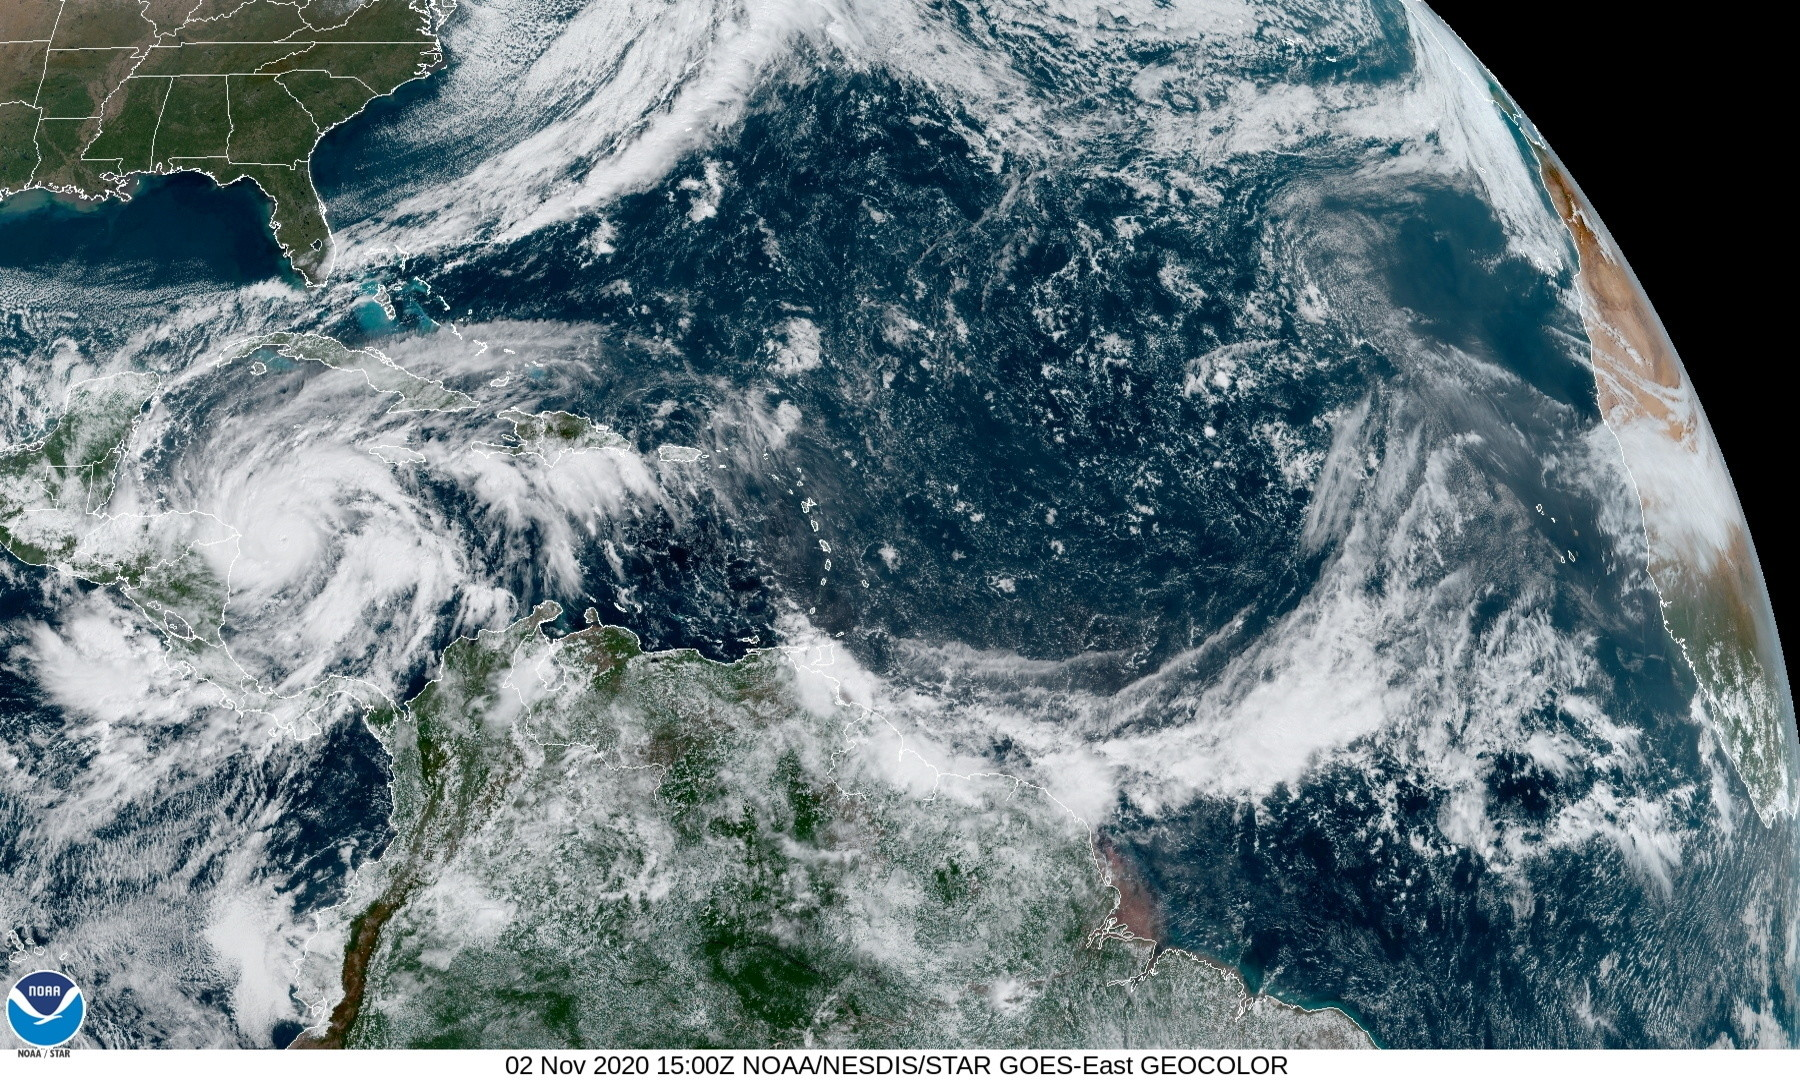 Hurricane Eta is seen churning in the Caribbean Sea toward Nicaragua in this satellite image taken November 2, 2020 over the Gulf of Mexico. U.S. National Oceanic and Atmospheric Administration (NOAA)/Handout via REUTERS   THIS IMAGE HAS BEEN SUPPLIED BY A THIRD PARTY. - RC26VJ9NYMOY